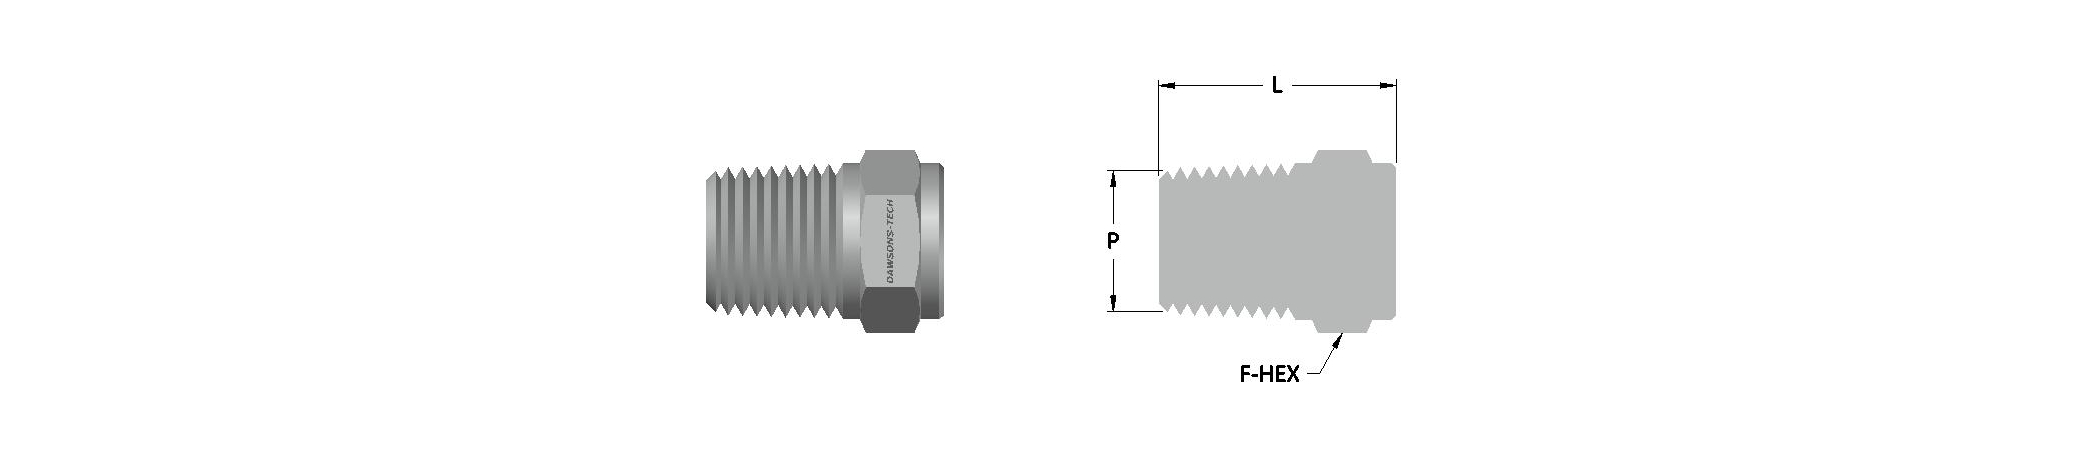 28 Pipe Plug (NPT) Threads